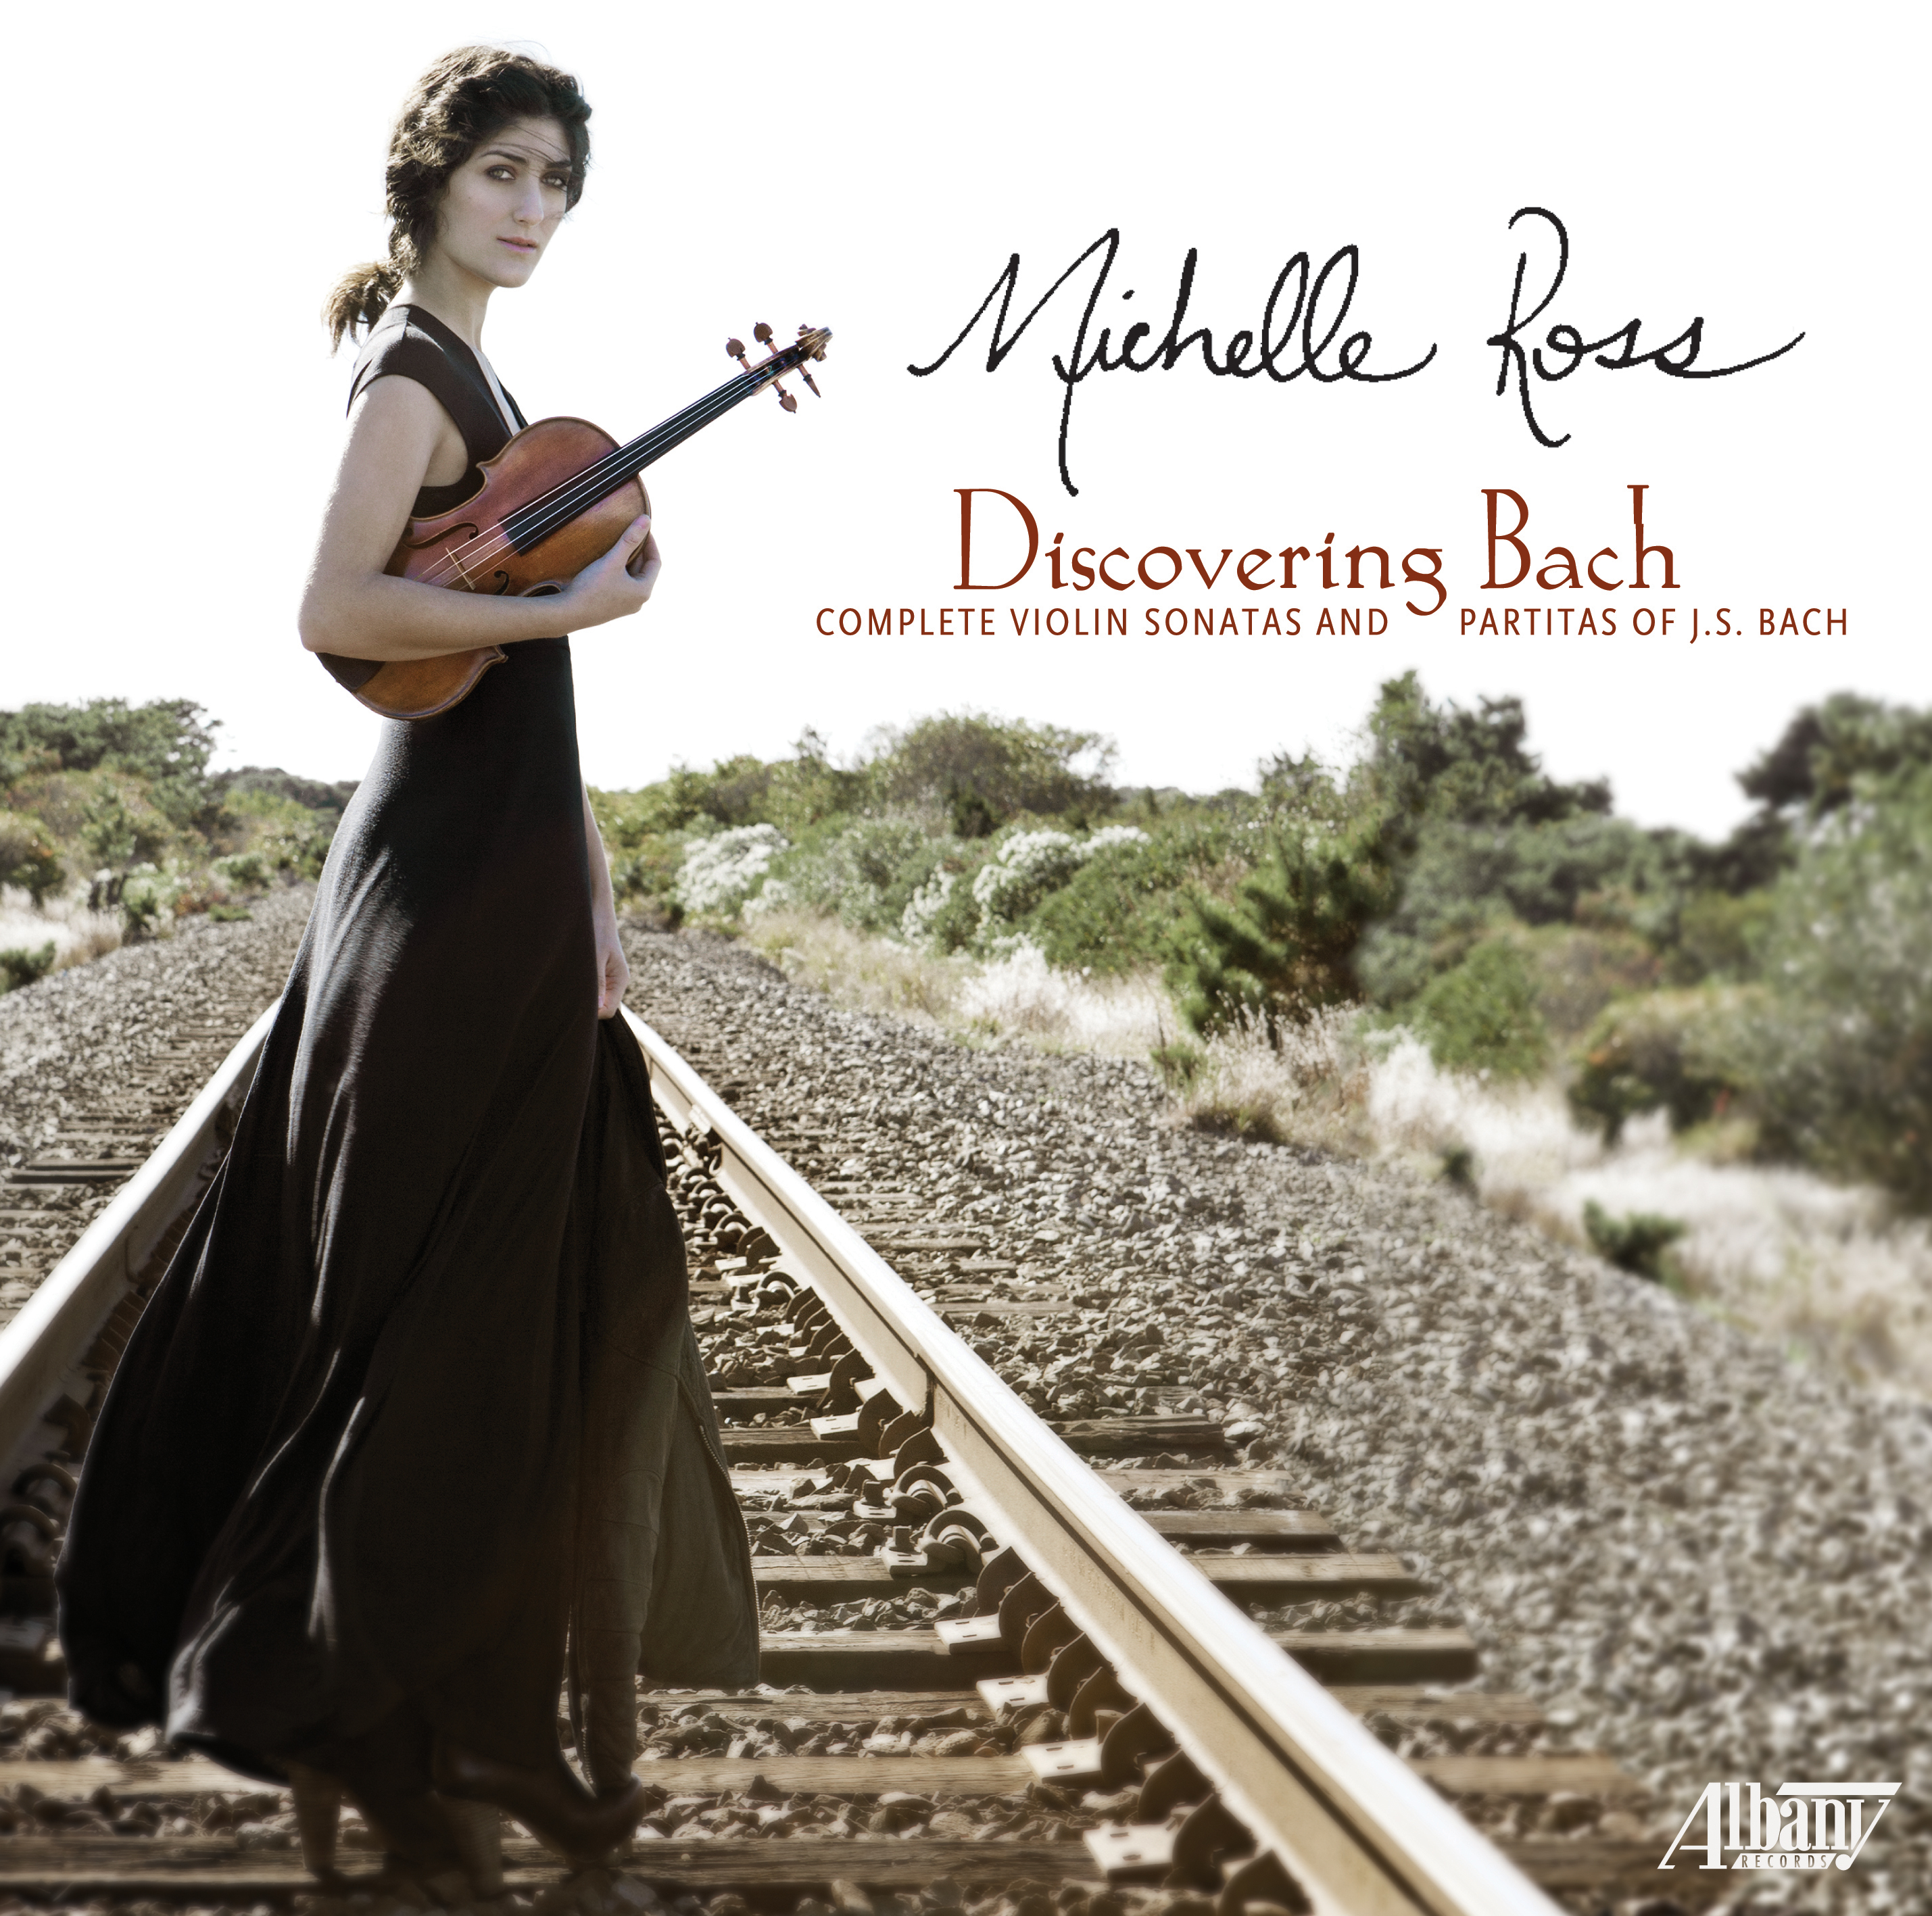 Michelle Ross, Violinist and Composer - Discography